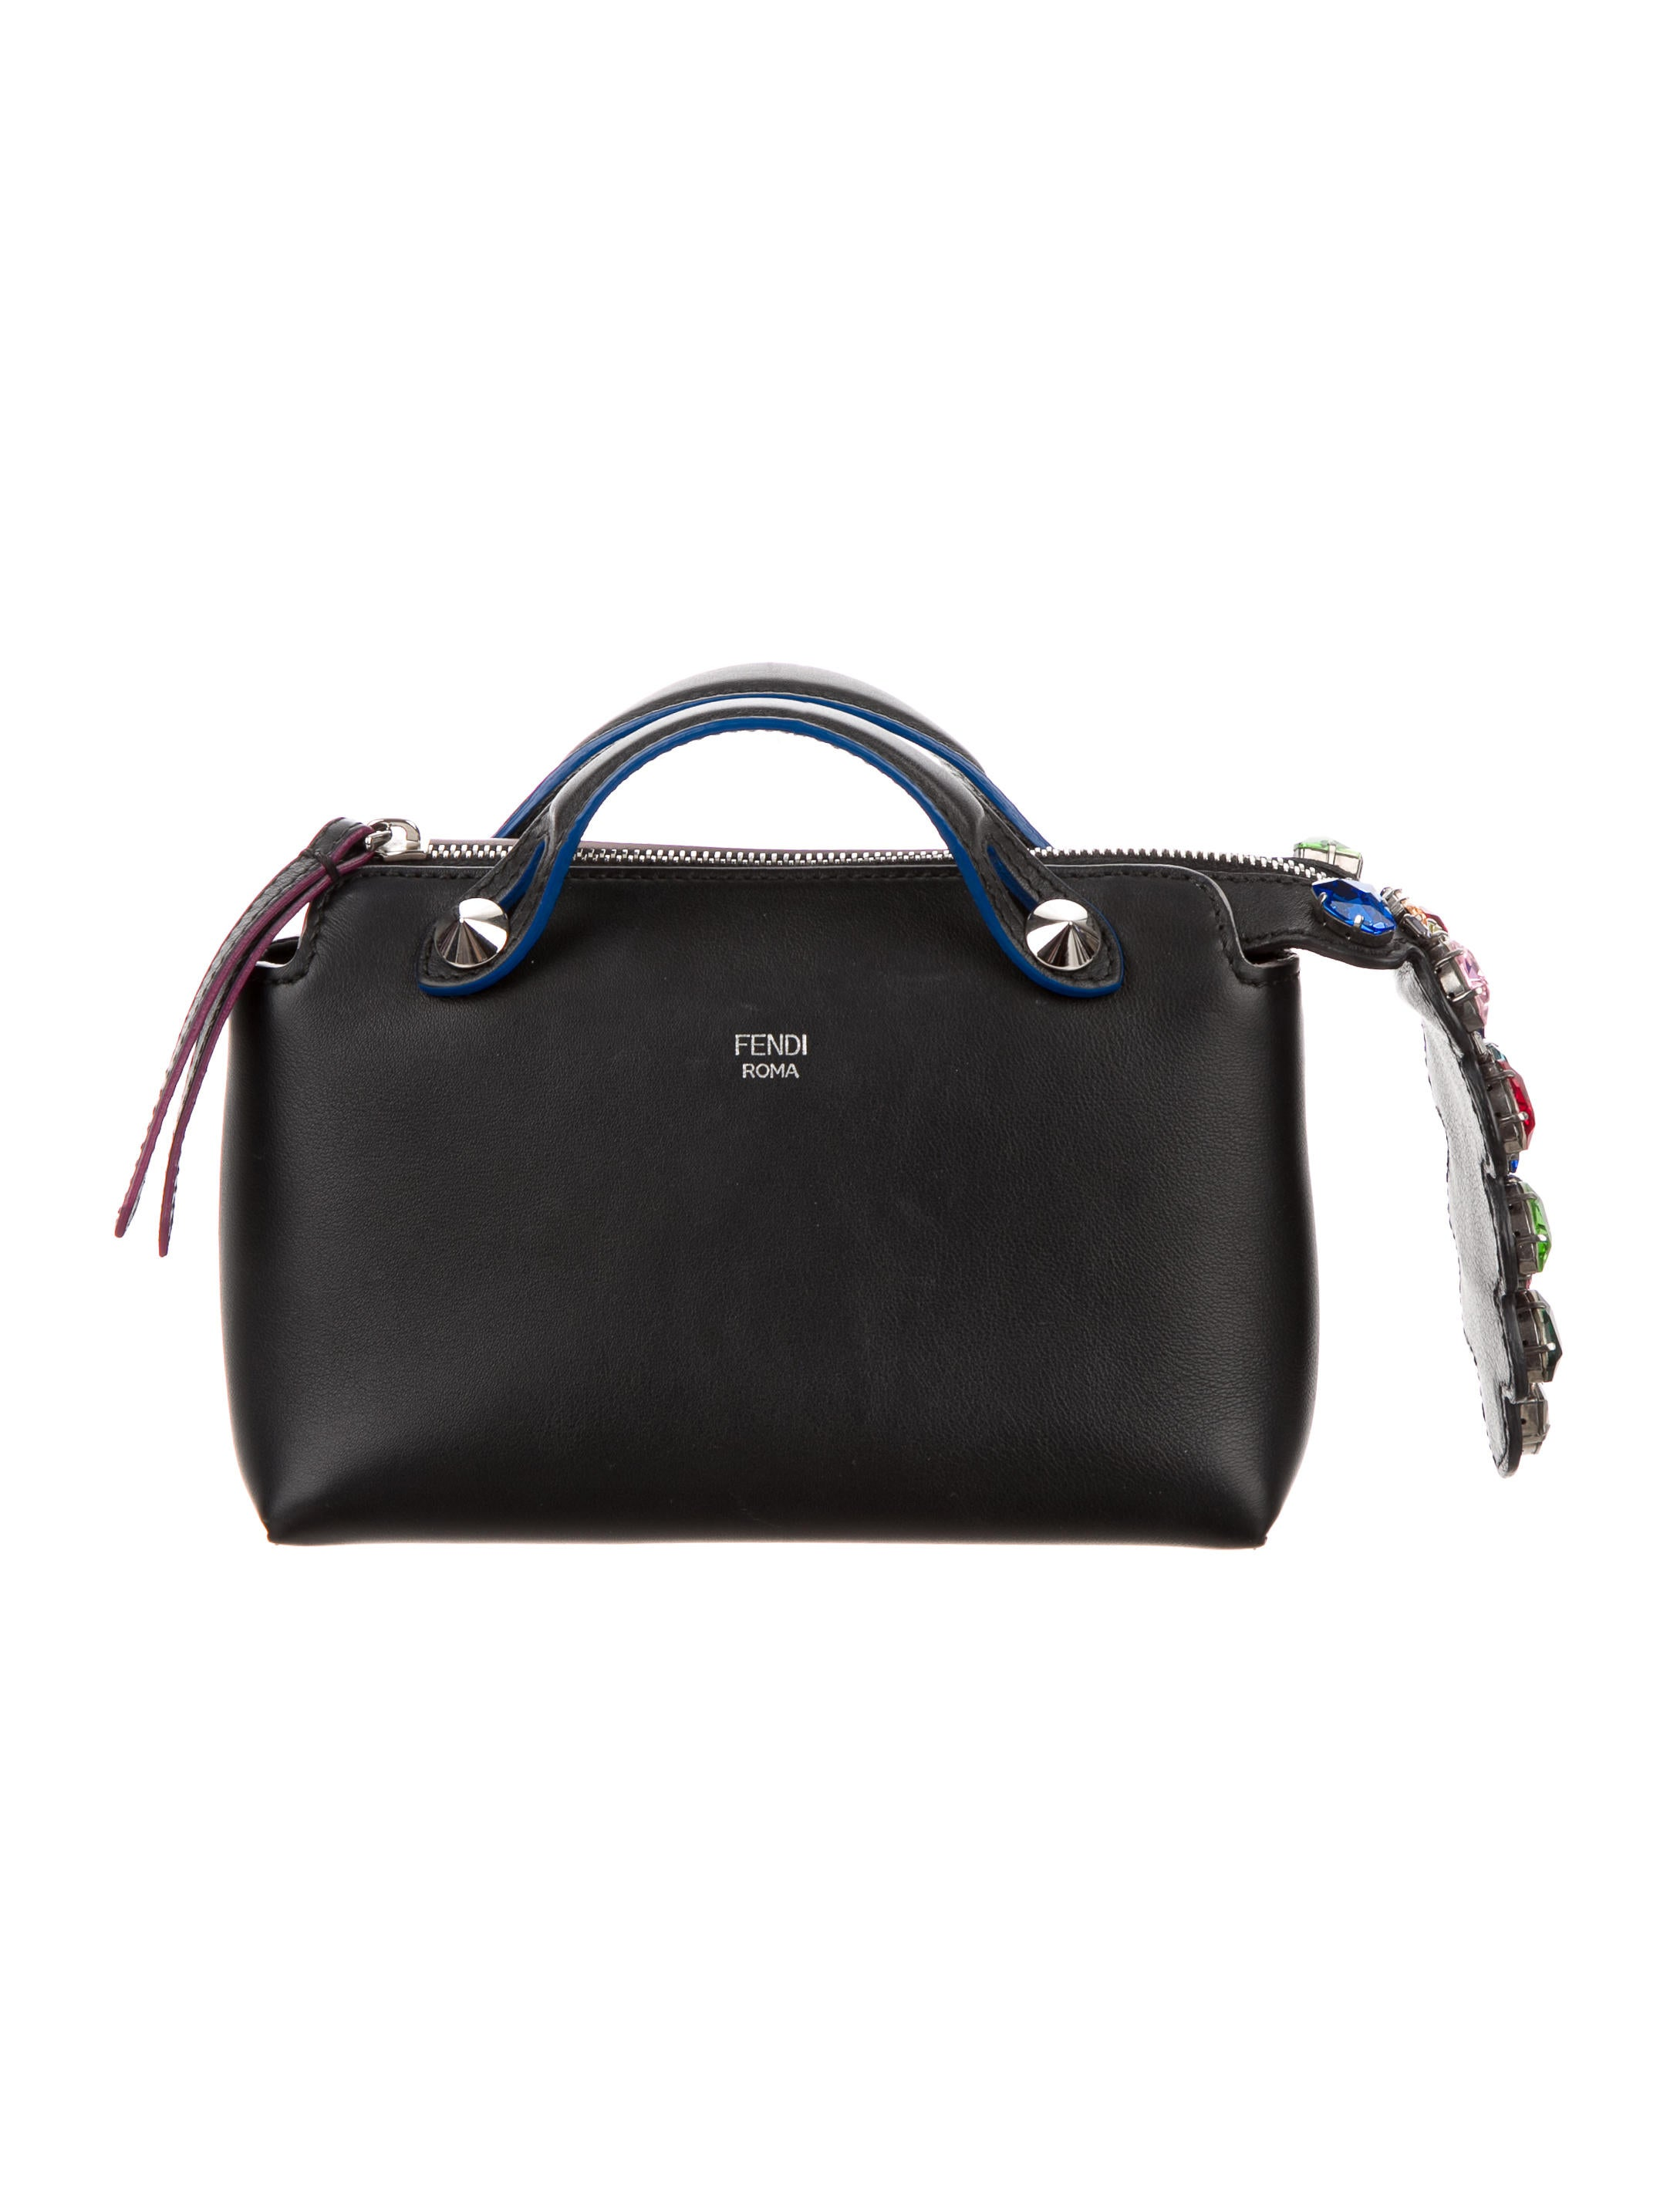 3328695fac08 Fendi Croc Tail By the Way Bag - Handbags - FEN47733